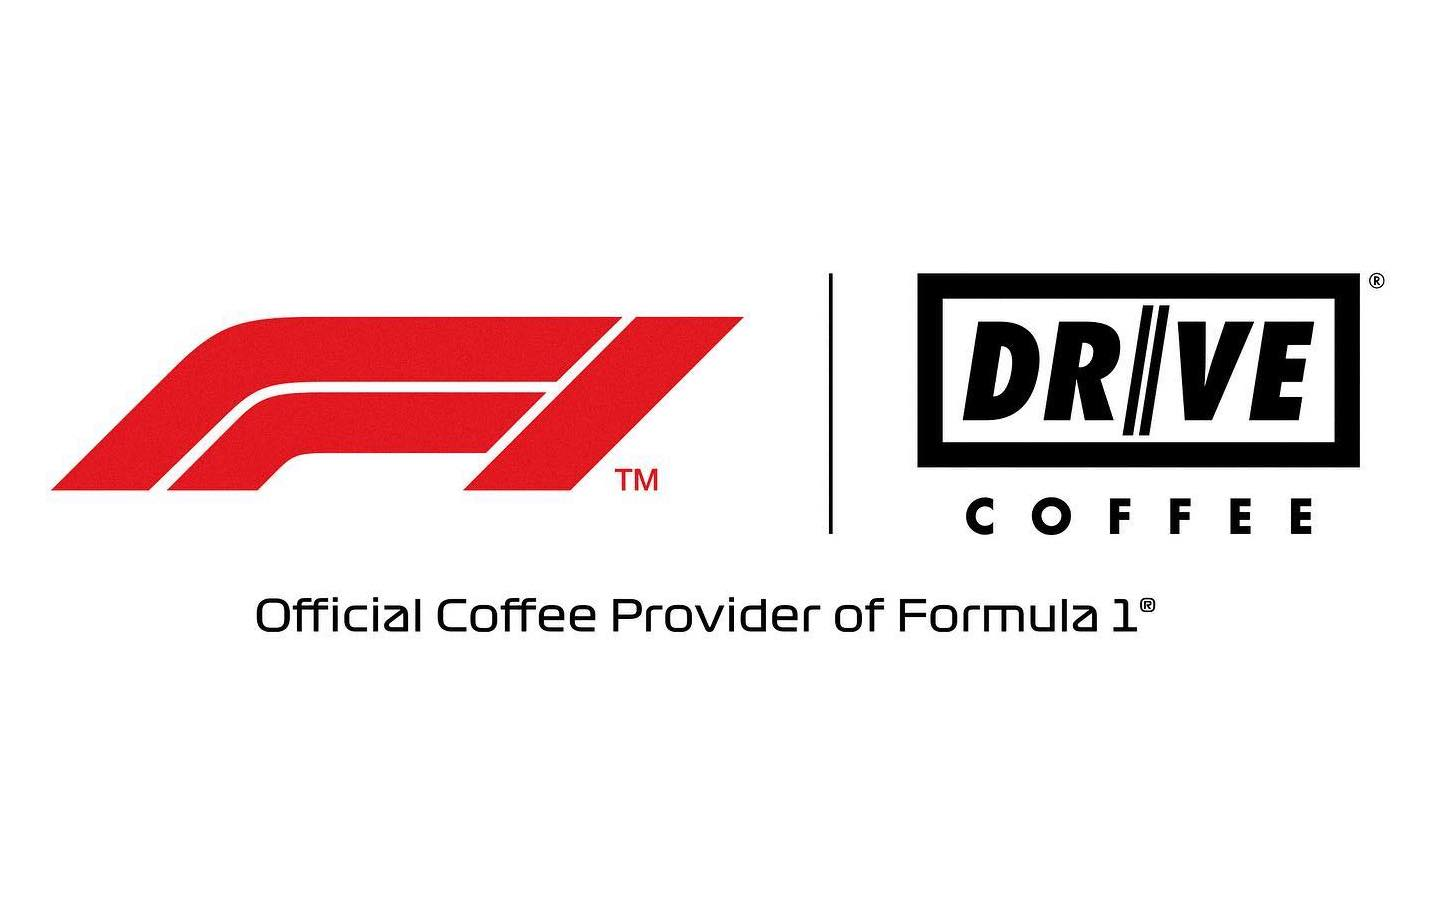 Drive Coffee and Formula 1